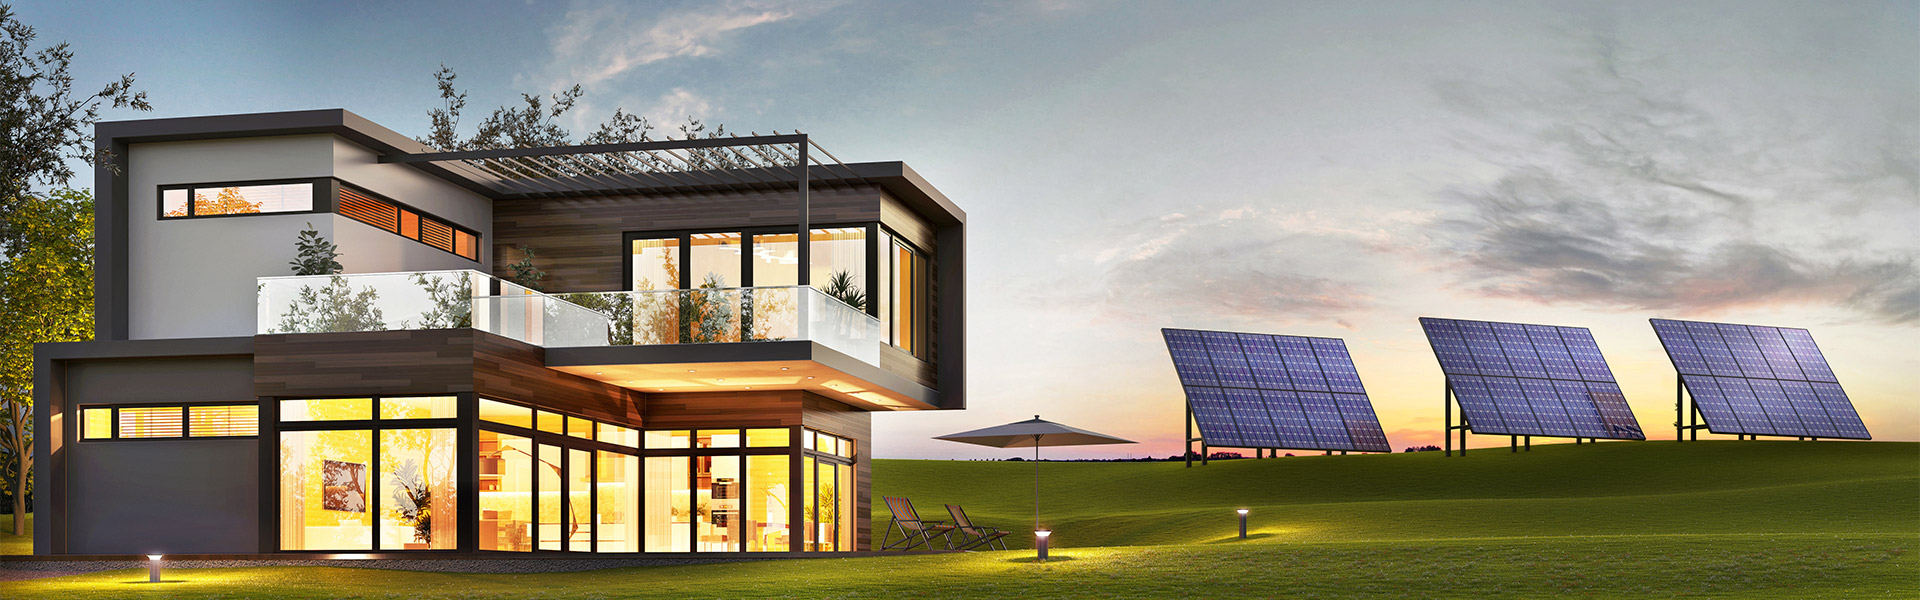 Evening view of a luxurious modern house with solar panels